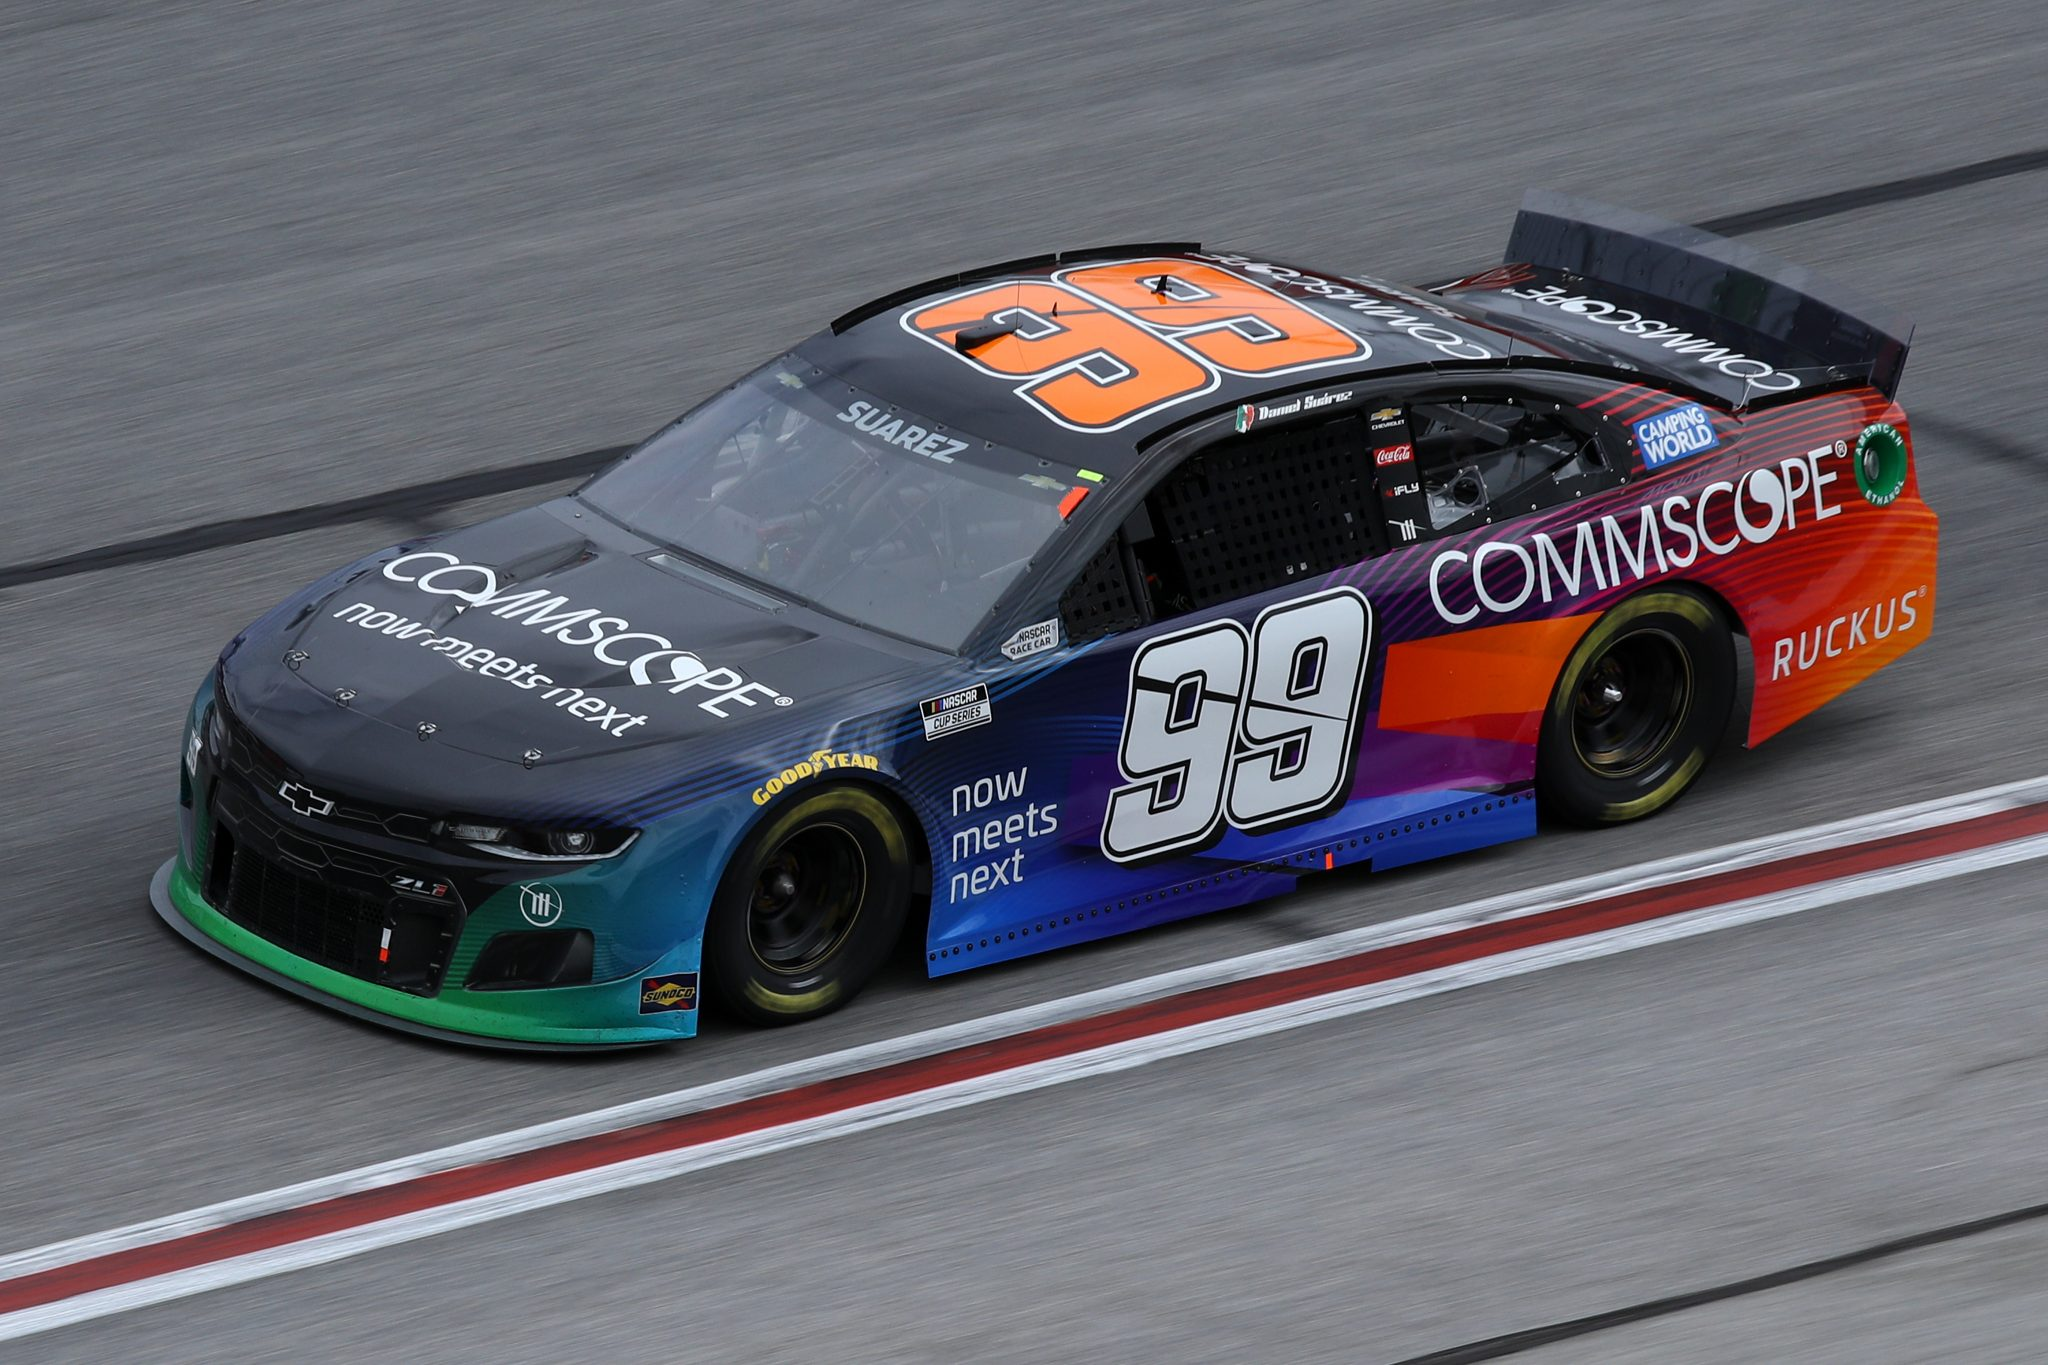 HAMPTON, GEORGIA - MARCH 21: Daniel Suarez, driver of the #99 CommScope Chevrolet, drives during the NASCAR Cup Series Folds of Honor QuikTrip 500 at Atlanta Motor Speedway on March 21, 2021 in Hampton, Georgia. (Photo by Sean Gardner/Getty Images) | Getty Images